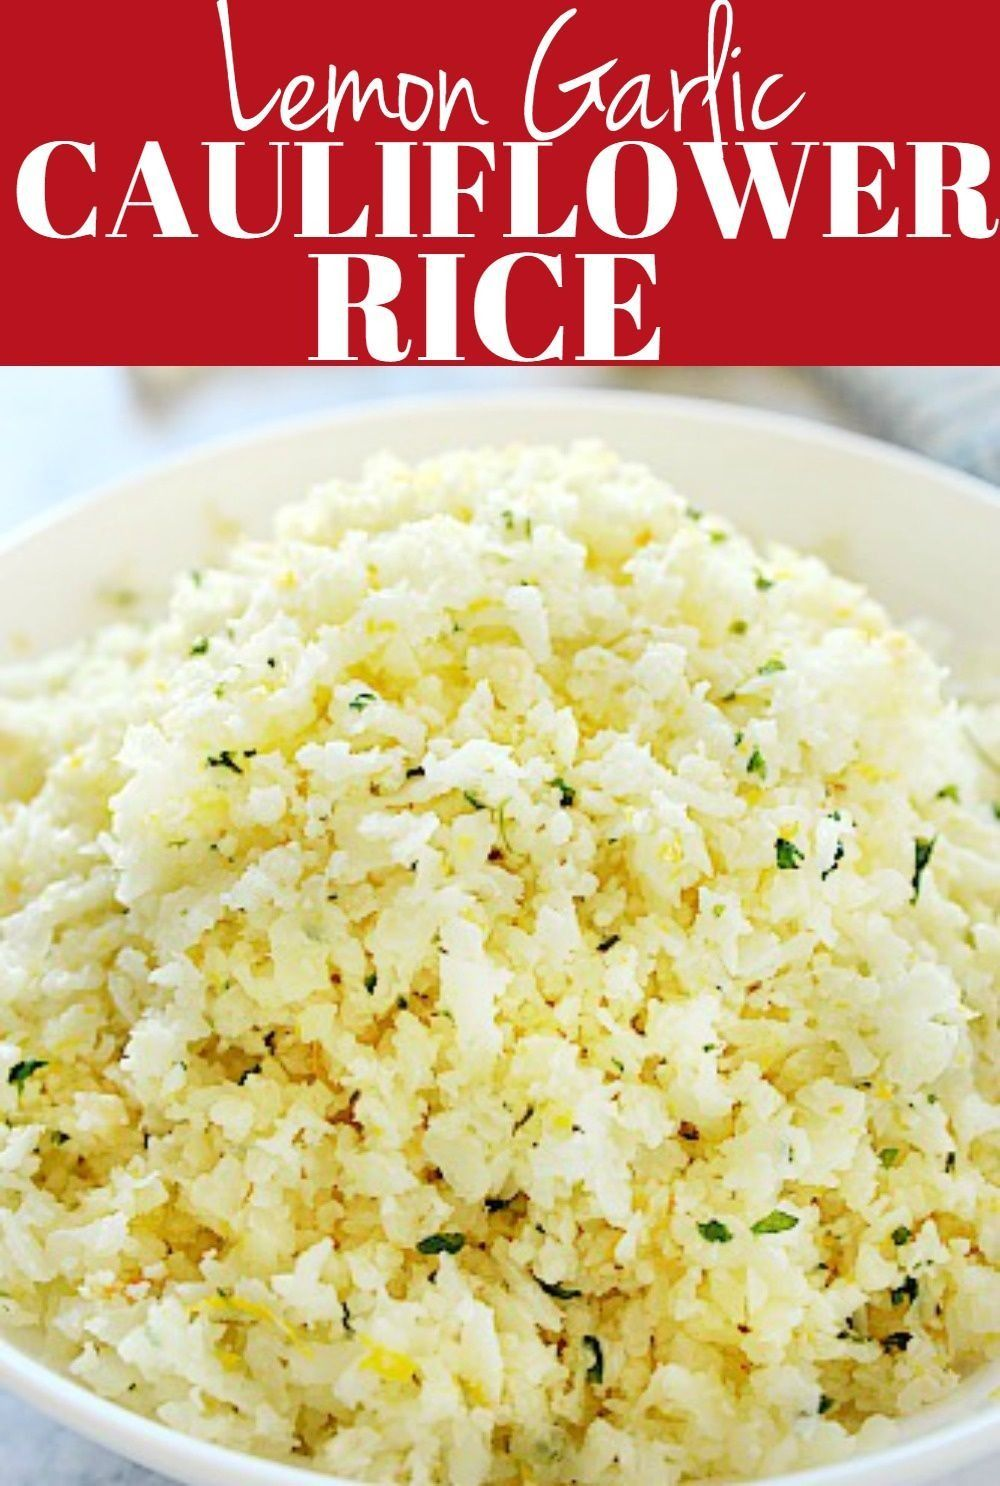 This Lemon Garlic Cauliflower Rice is made with just 4 ingredients Perfect lowcarb side dish thats bursting with flavor